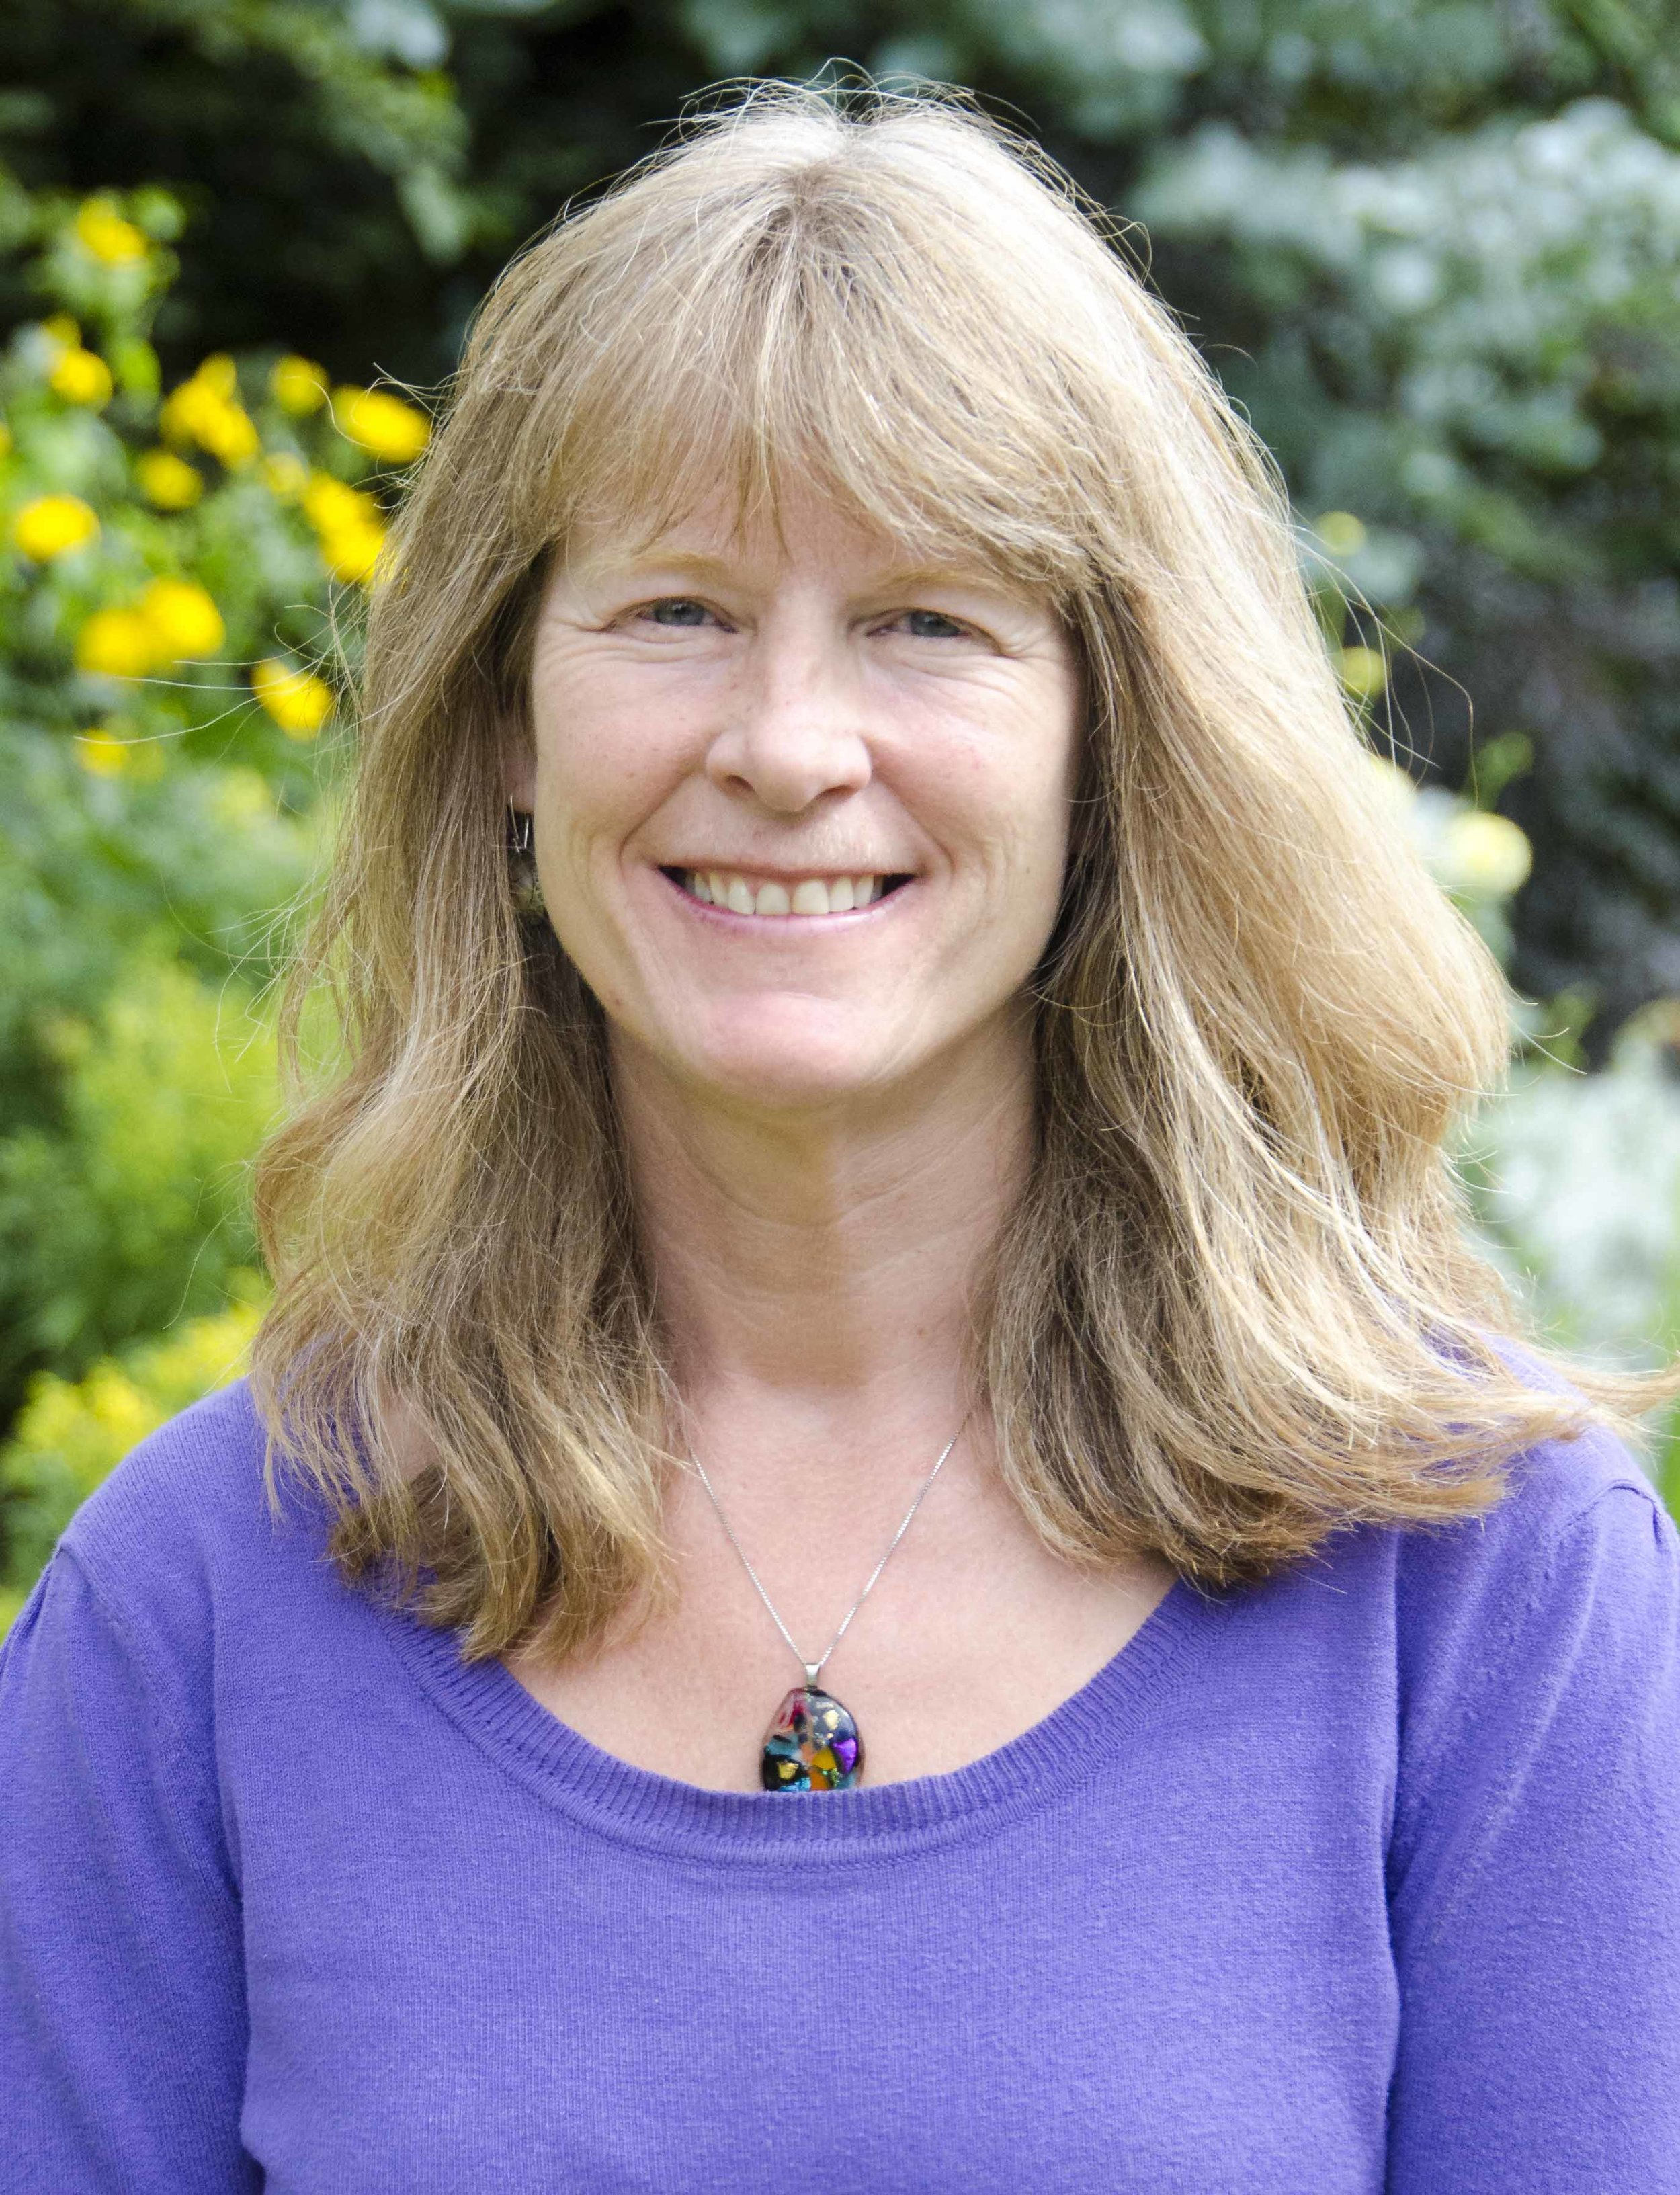 Jacky Adams practices counselling, and CBT therapy at The Open Door clinic.